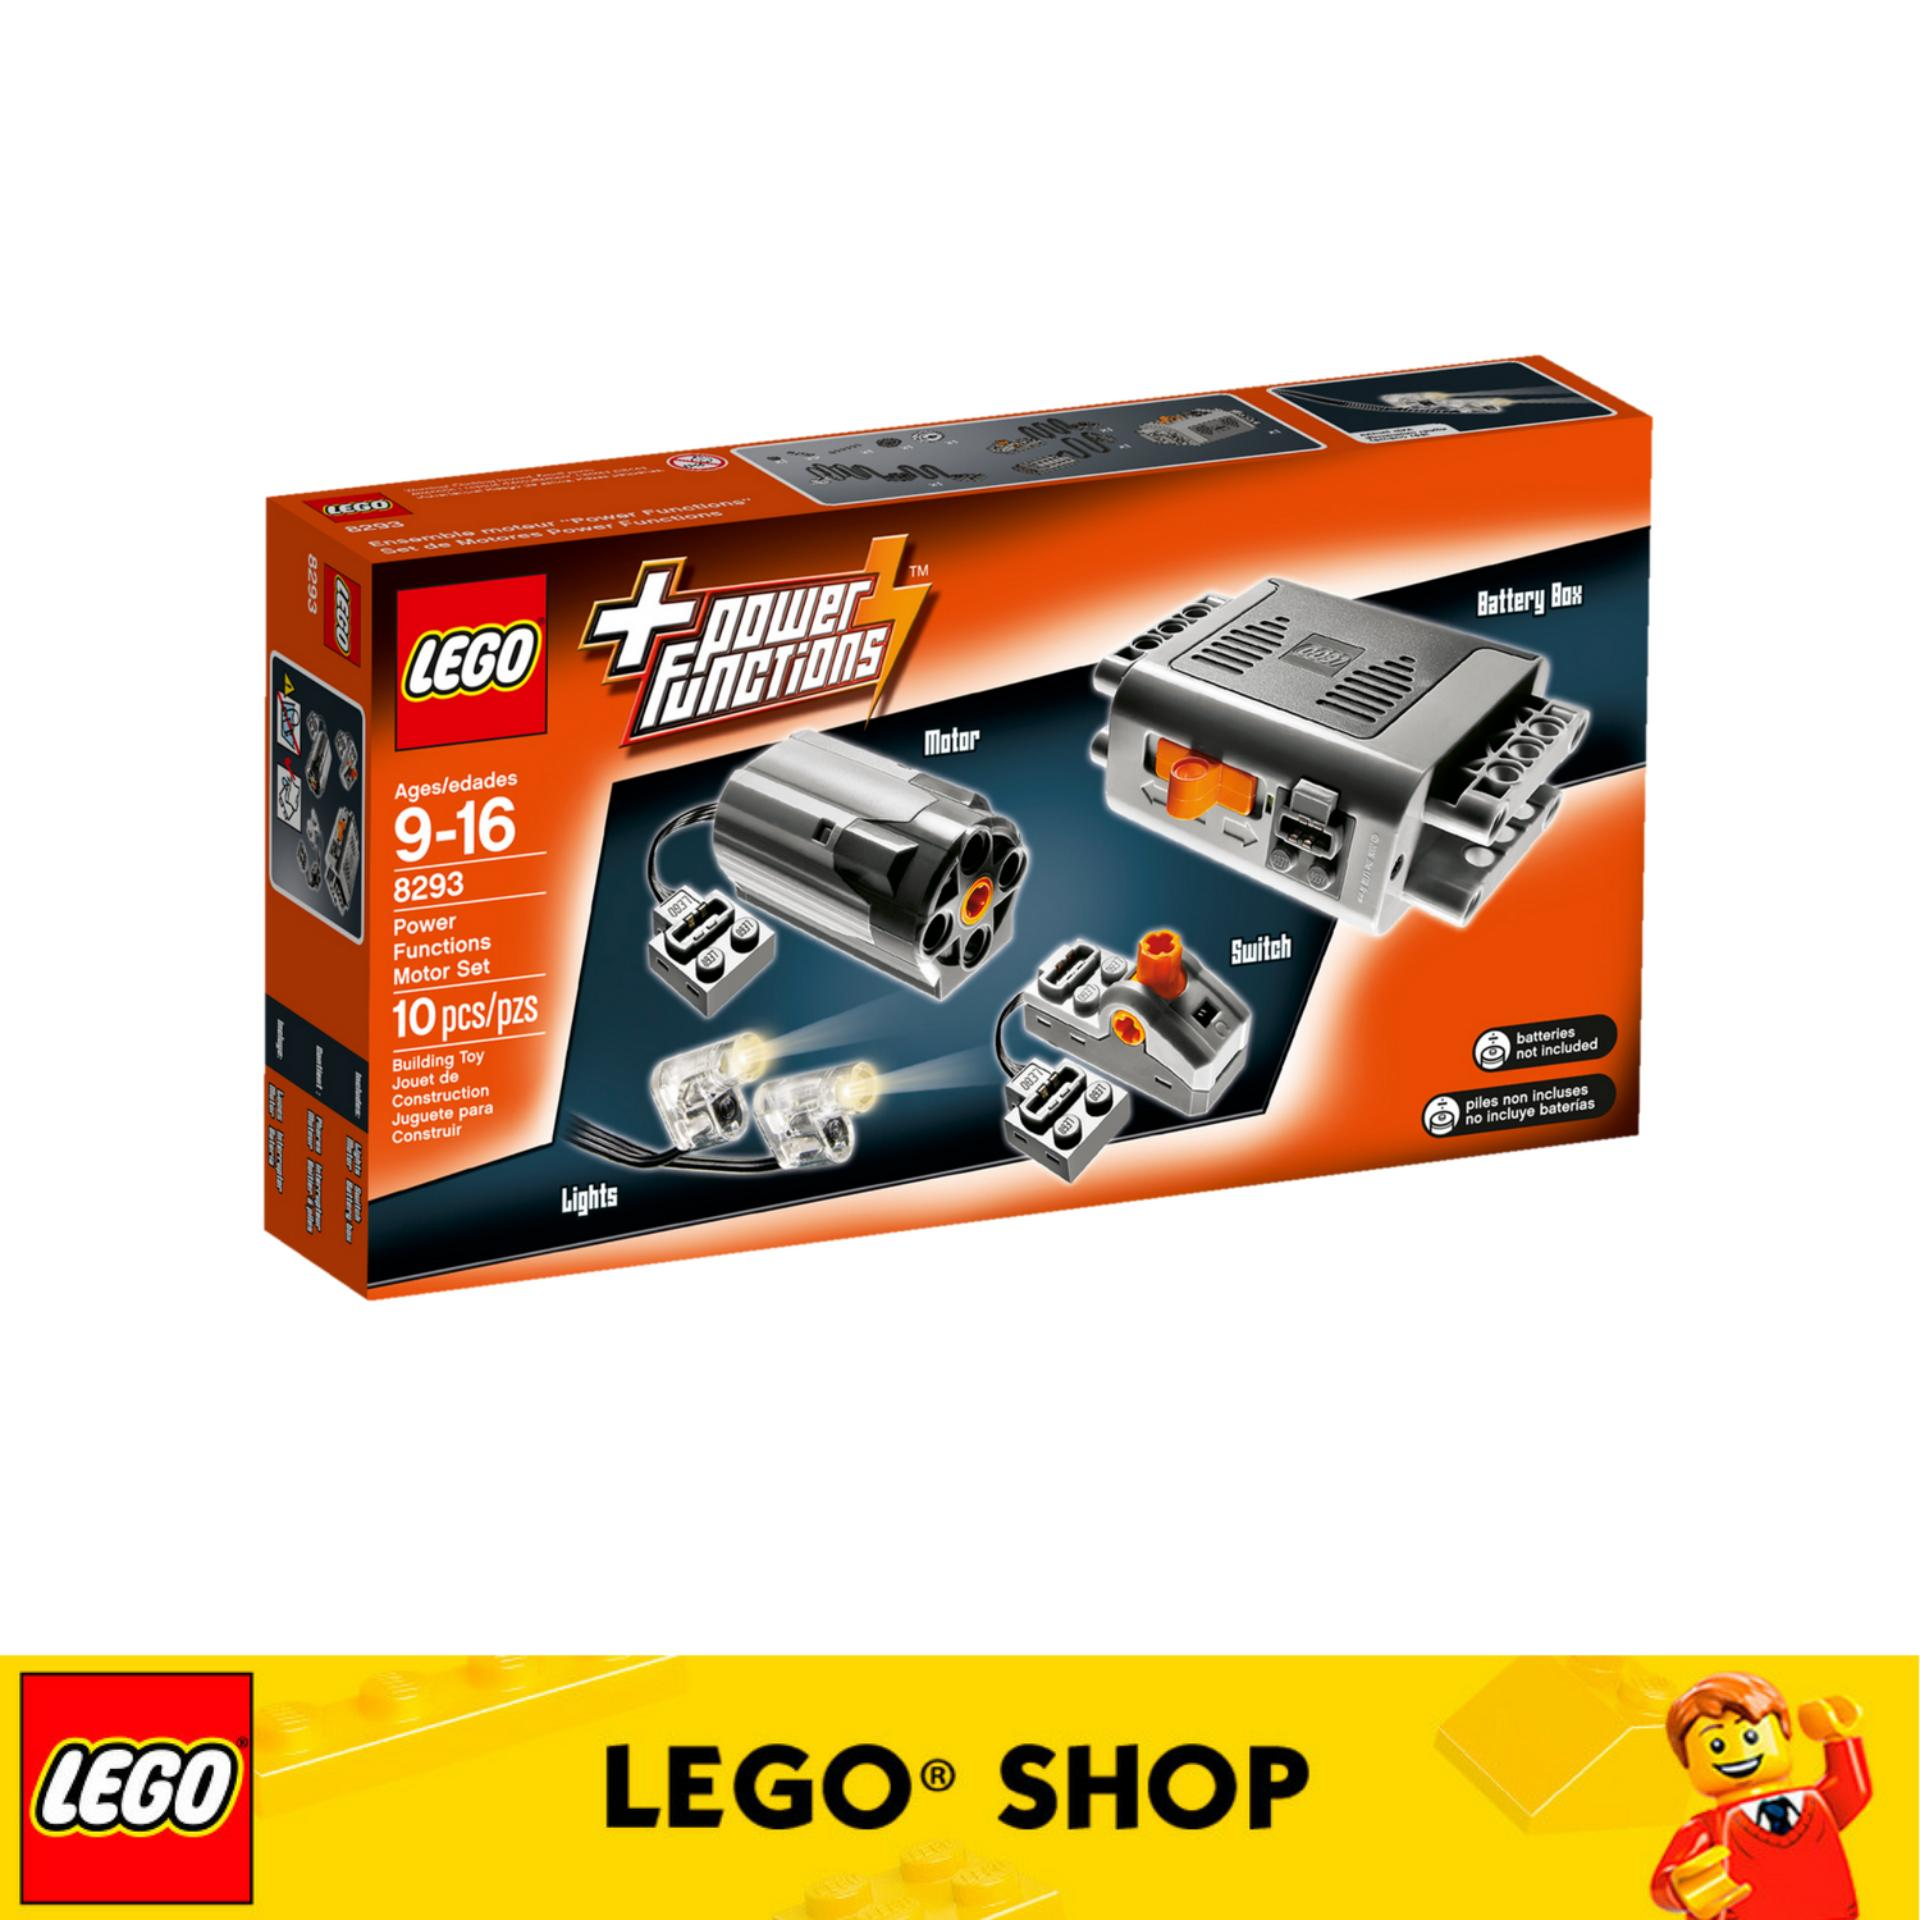 Best Reviews Of Lego® Technic Power Functions Motor Set 8293